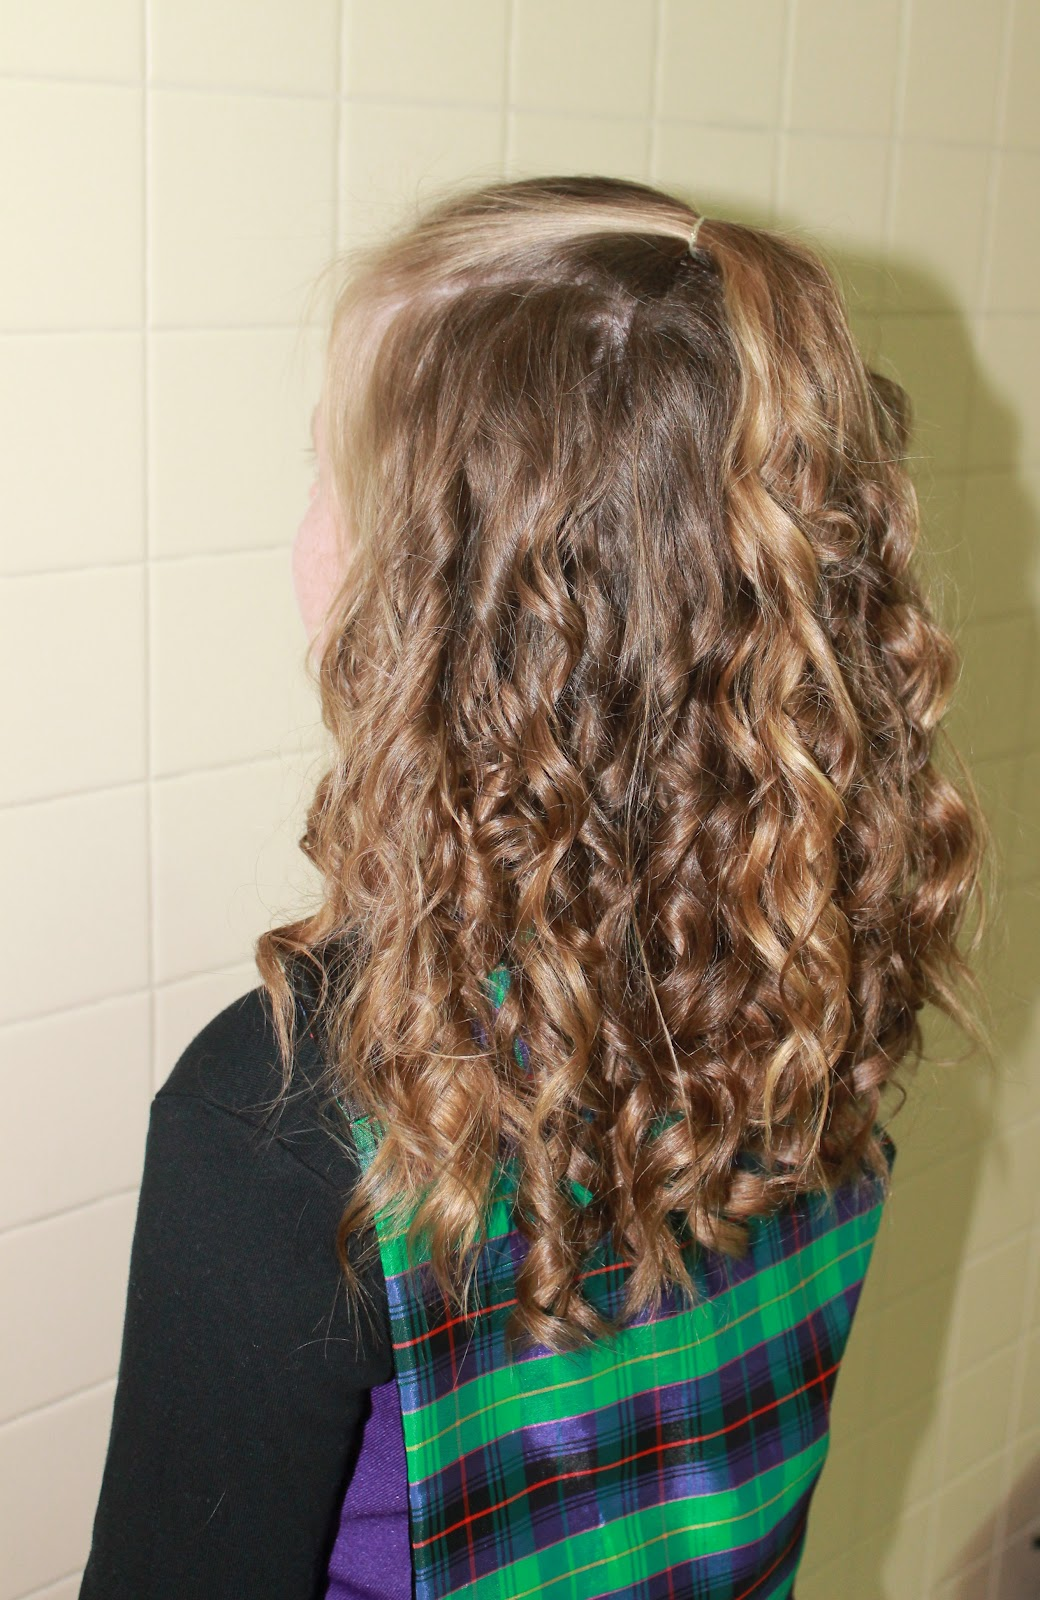 All Natural Hair Dye With Artian Oil